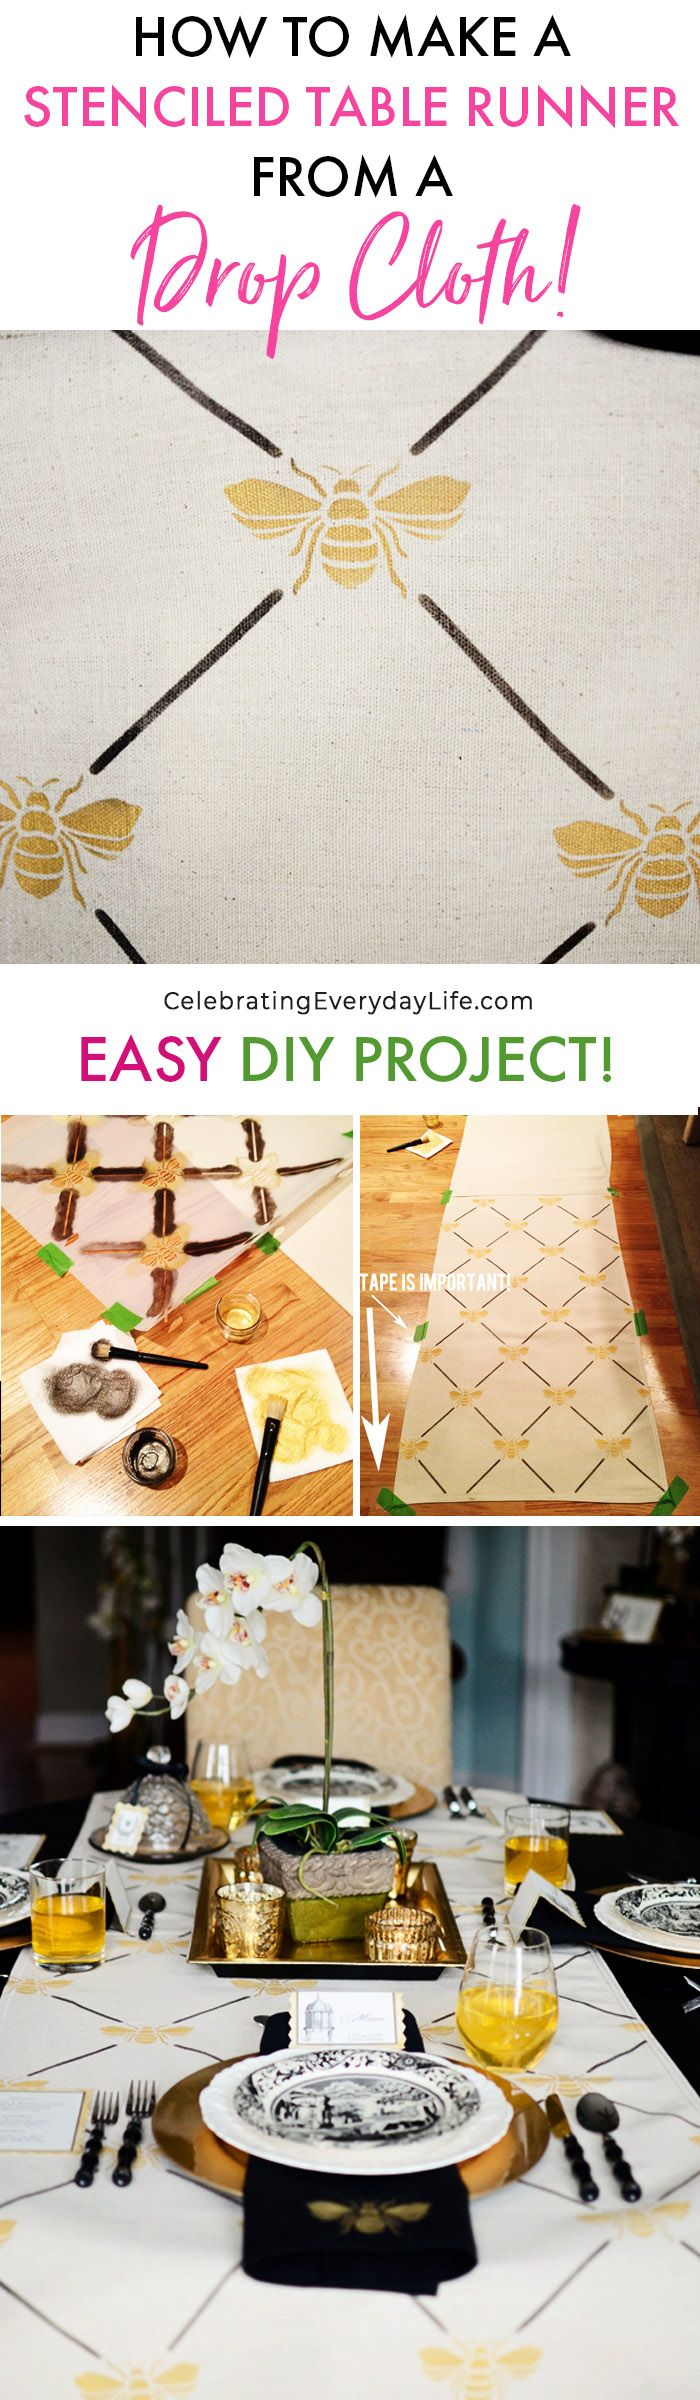 How to Make a Custom Stenciled Table Runner from a Drop Cloth! Easy Budget-friendly DIY decor that you can do in a day! via @jencarrollva